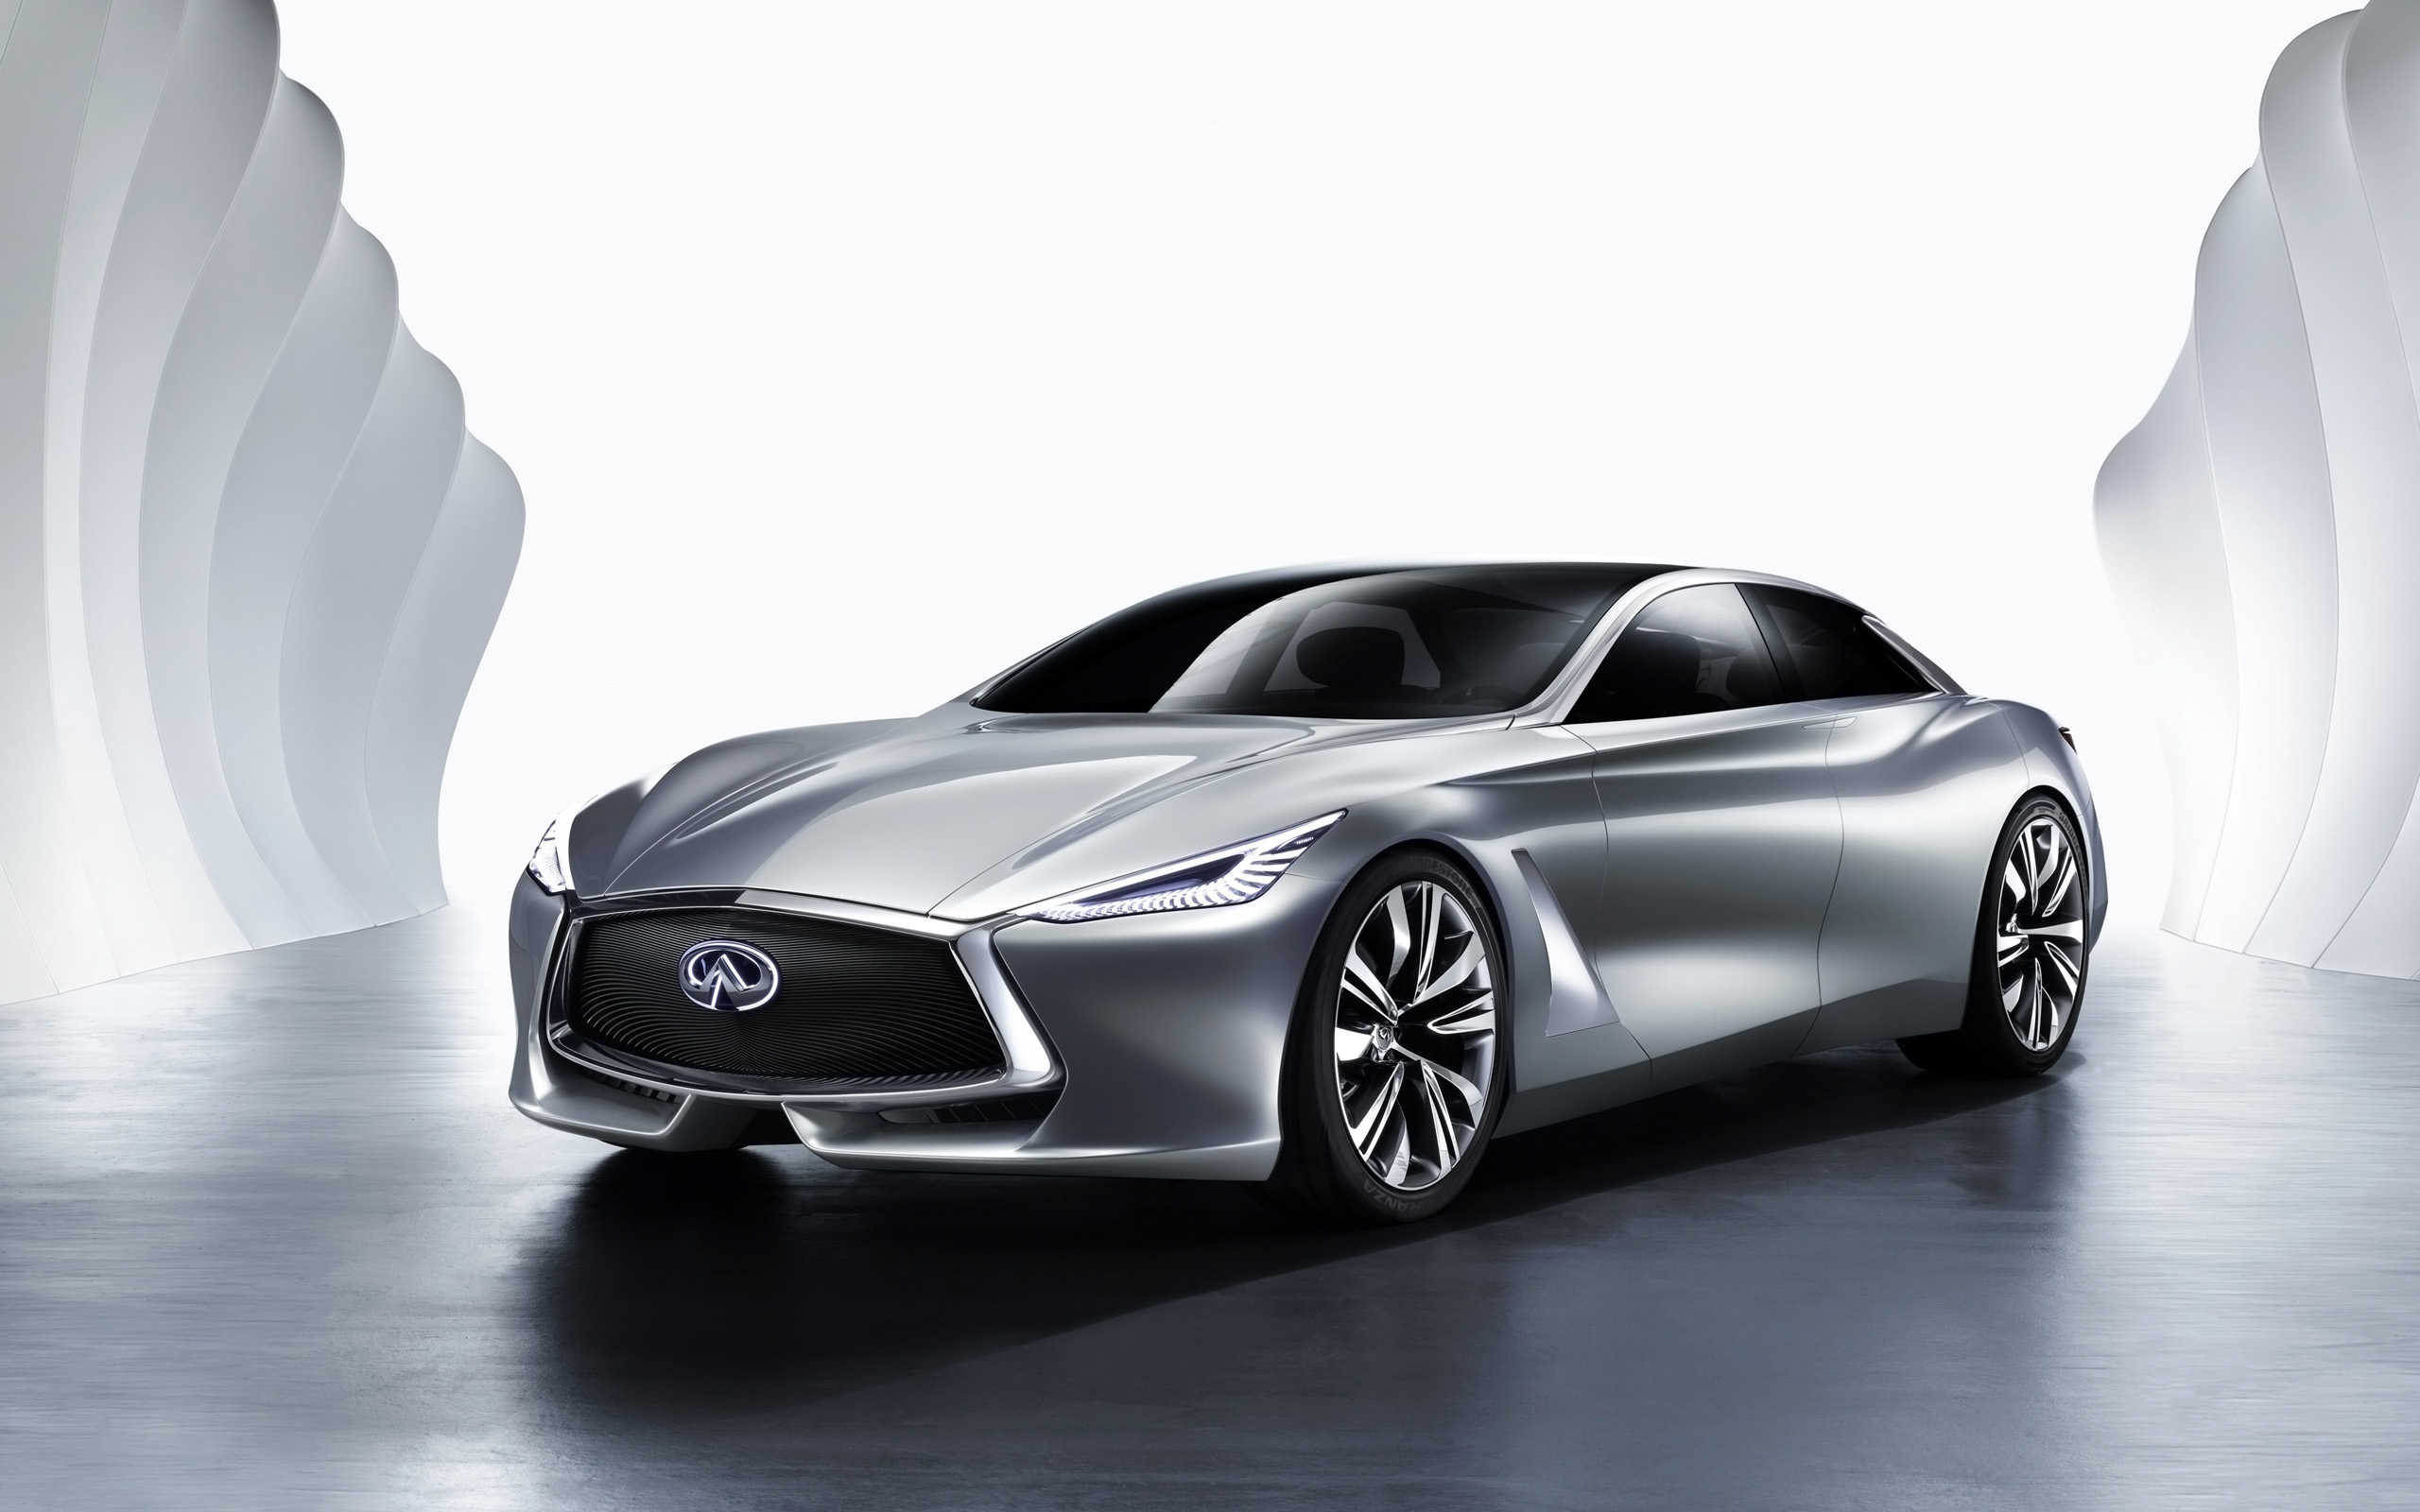 infiniti q80 inspiration concept 2014 wallpaper hd car wallpapers. Black Bedroom Furniture Sets. Home Design Ideas